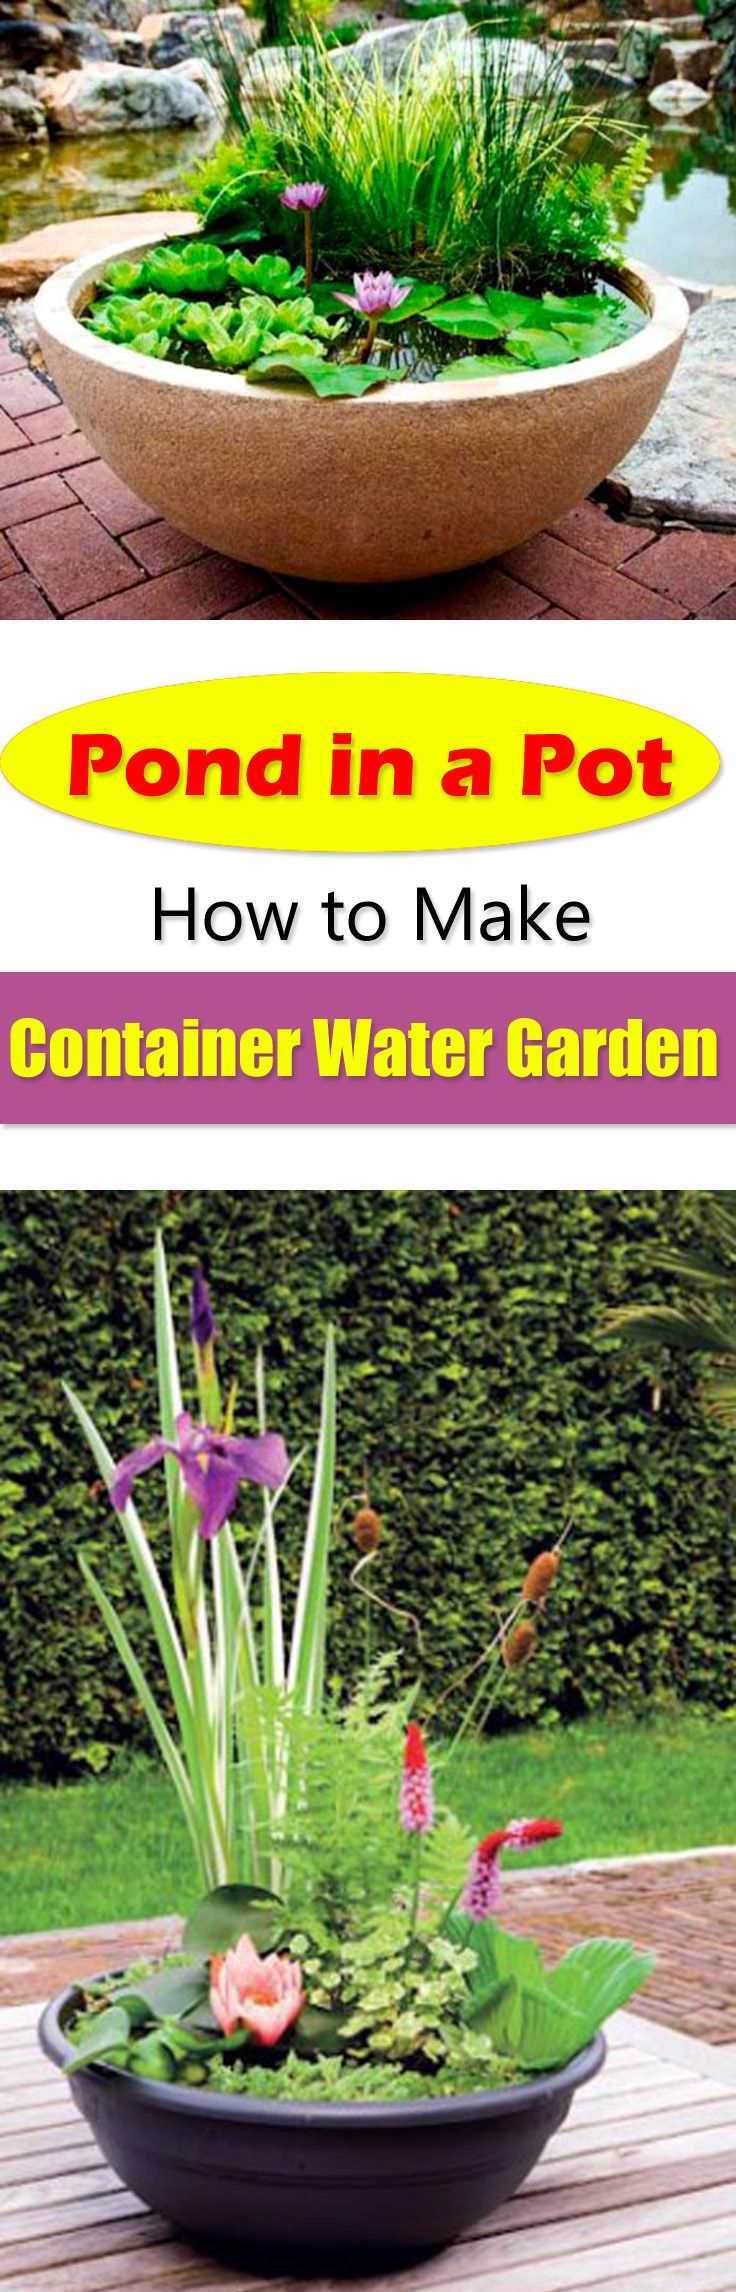 ** Pond in a Pot: Create a Container Water Garden | Balcony Garden Web